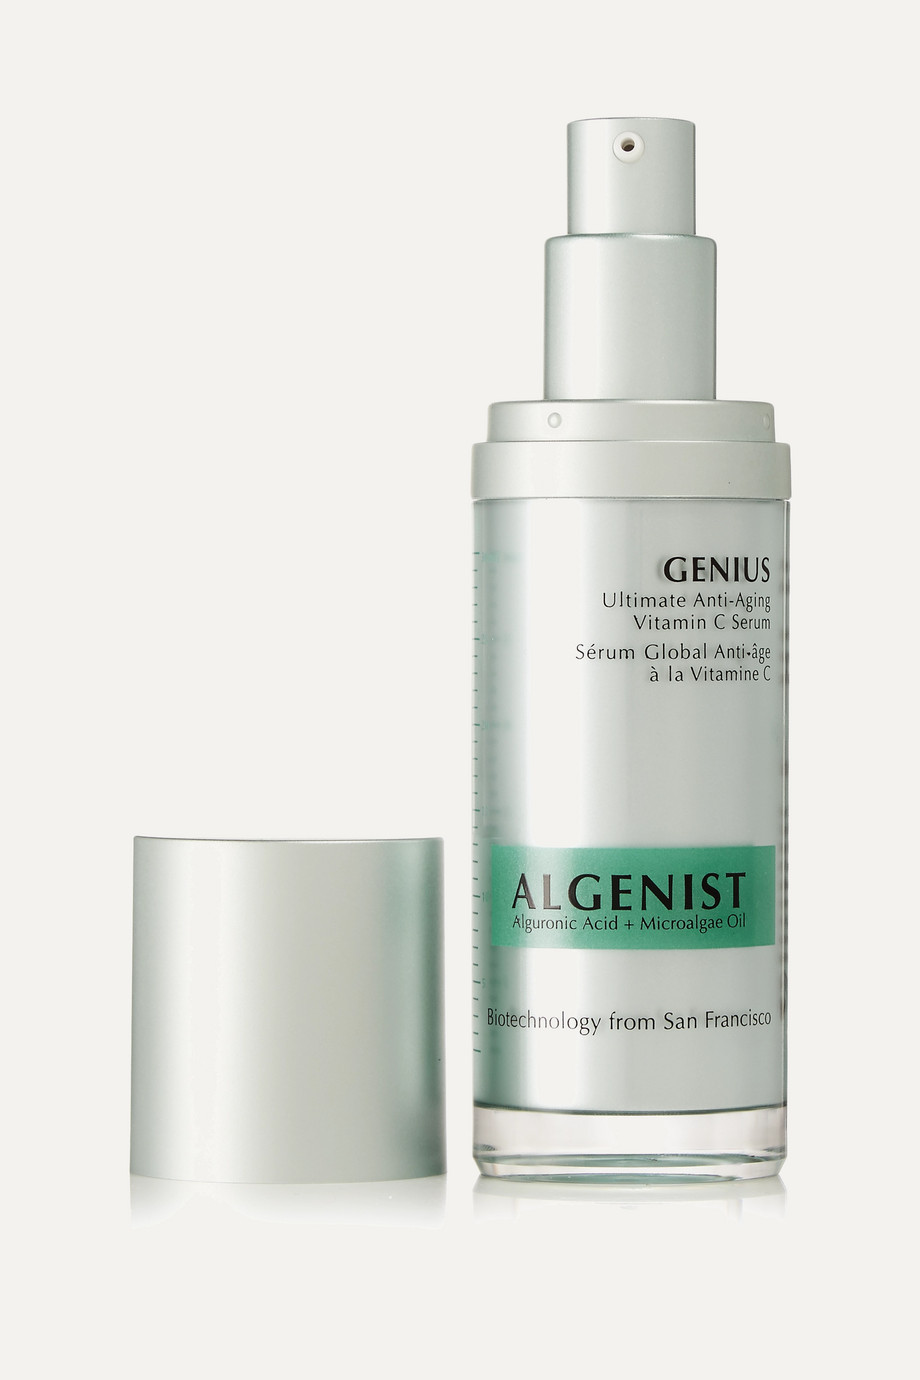 Algenist GENIUS Ultimate Anti-Aging Vitamin C+ Serum, 30ml